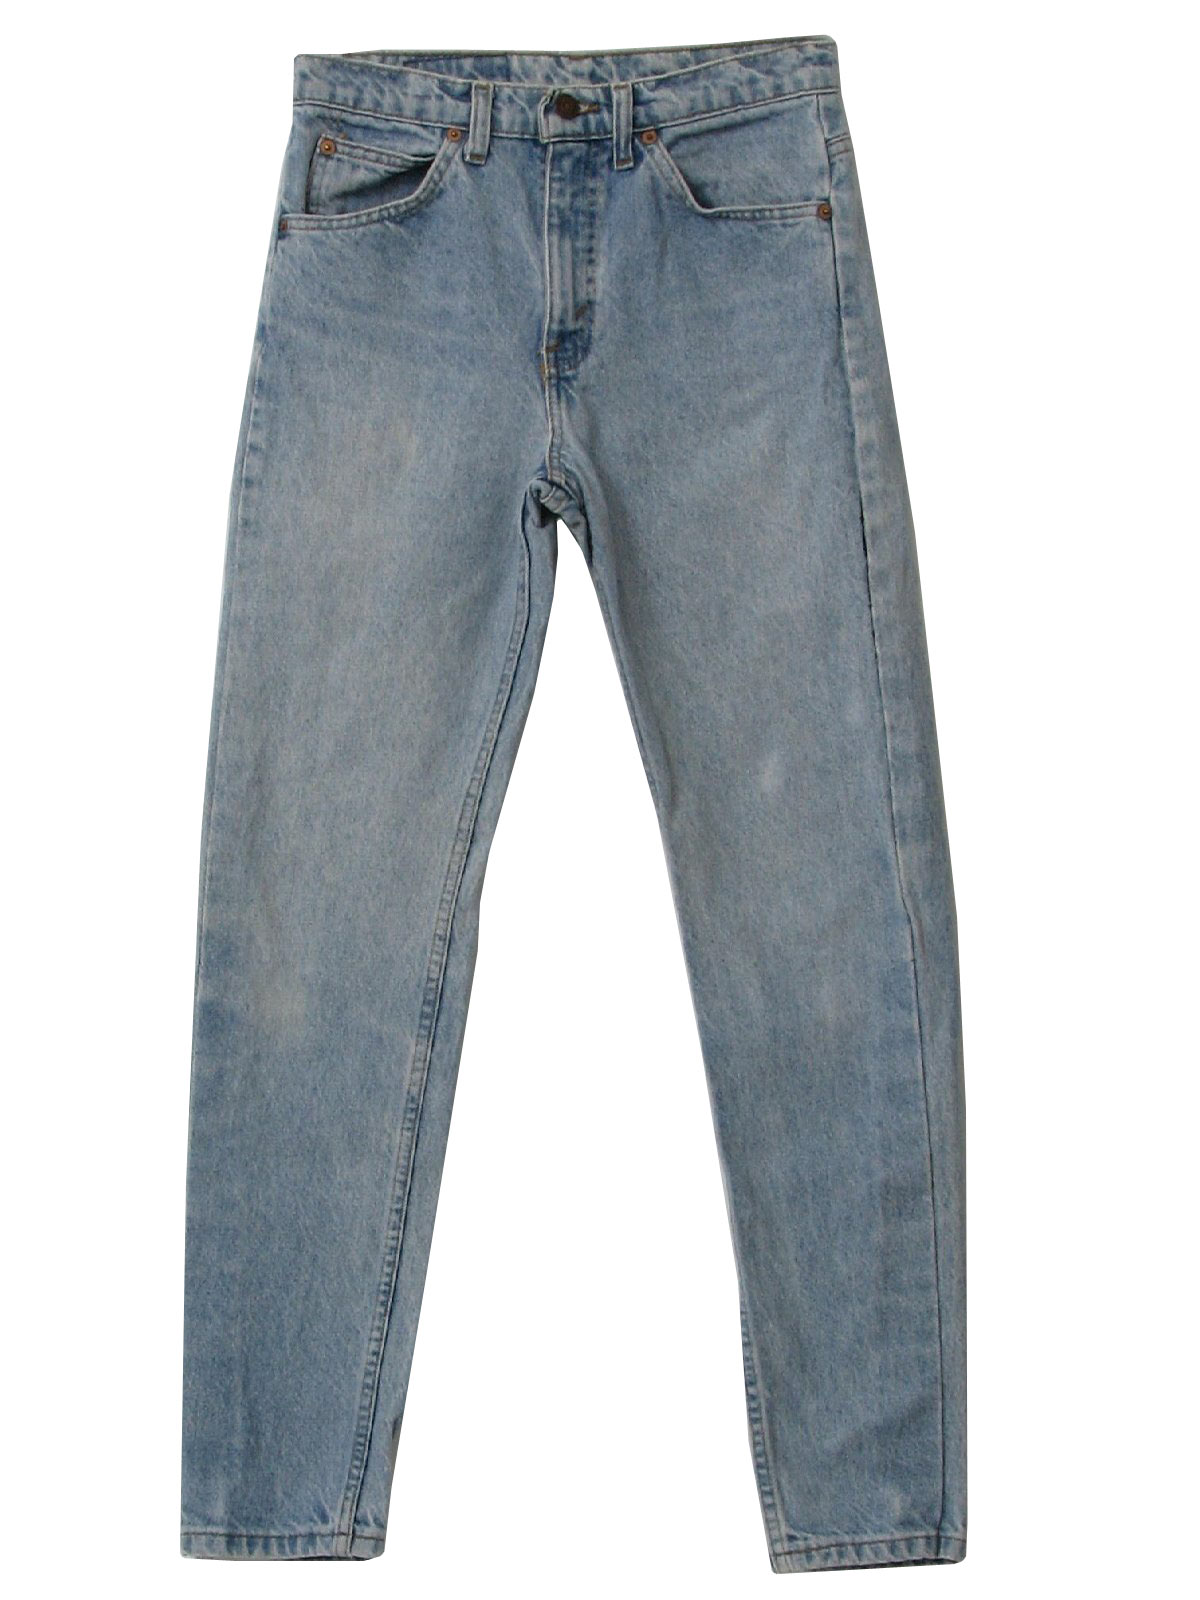 Womens Levis Skinny Jeans